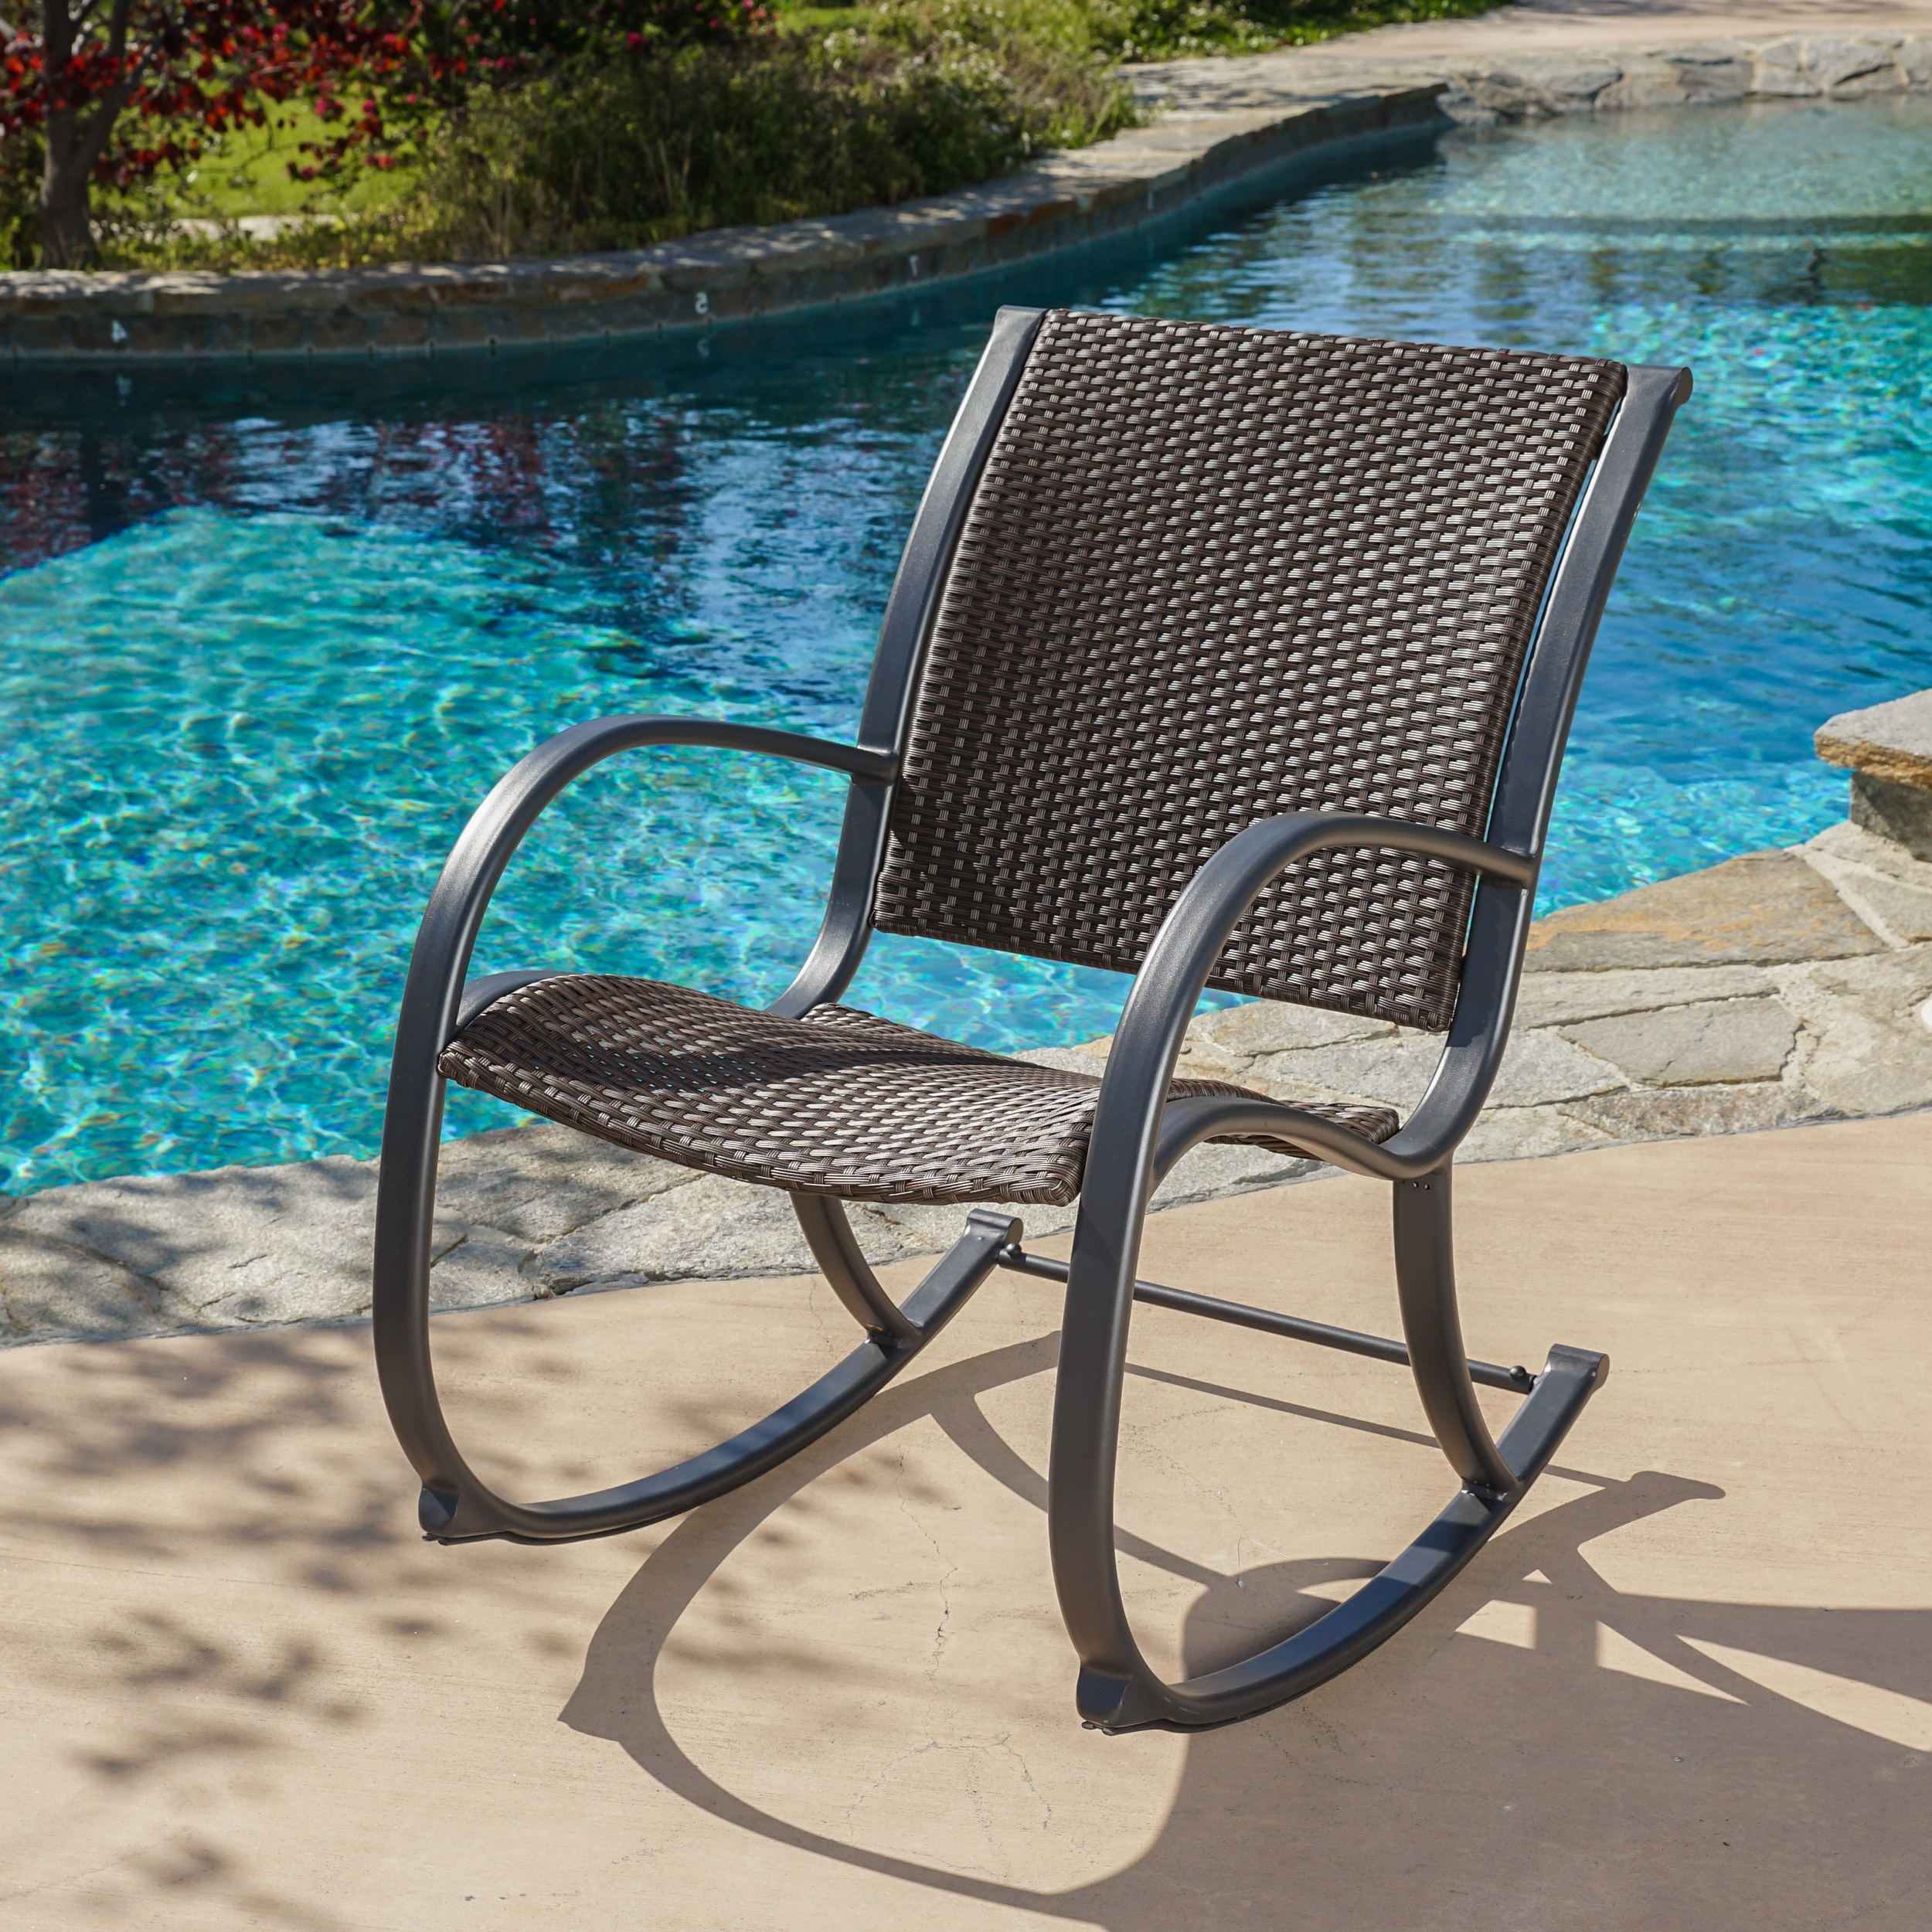 Preferred Rocking Chairs At Costco Intended For Furniture: Best Outdoor Wicker Rocking Chair Ideas (View 5 of 15)